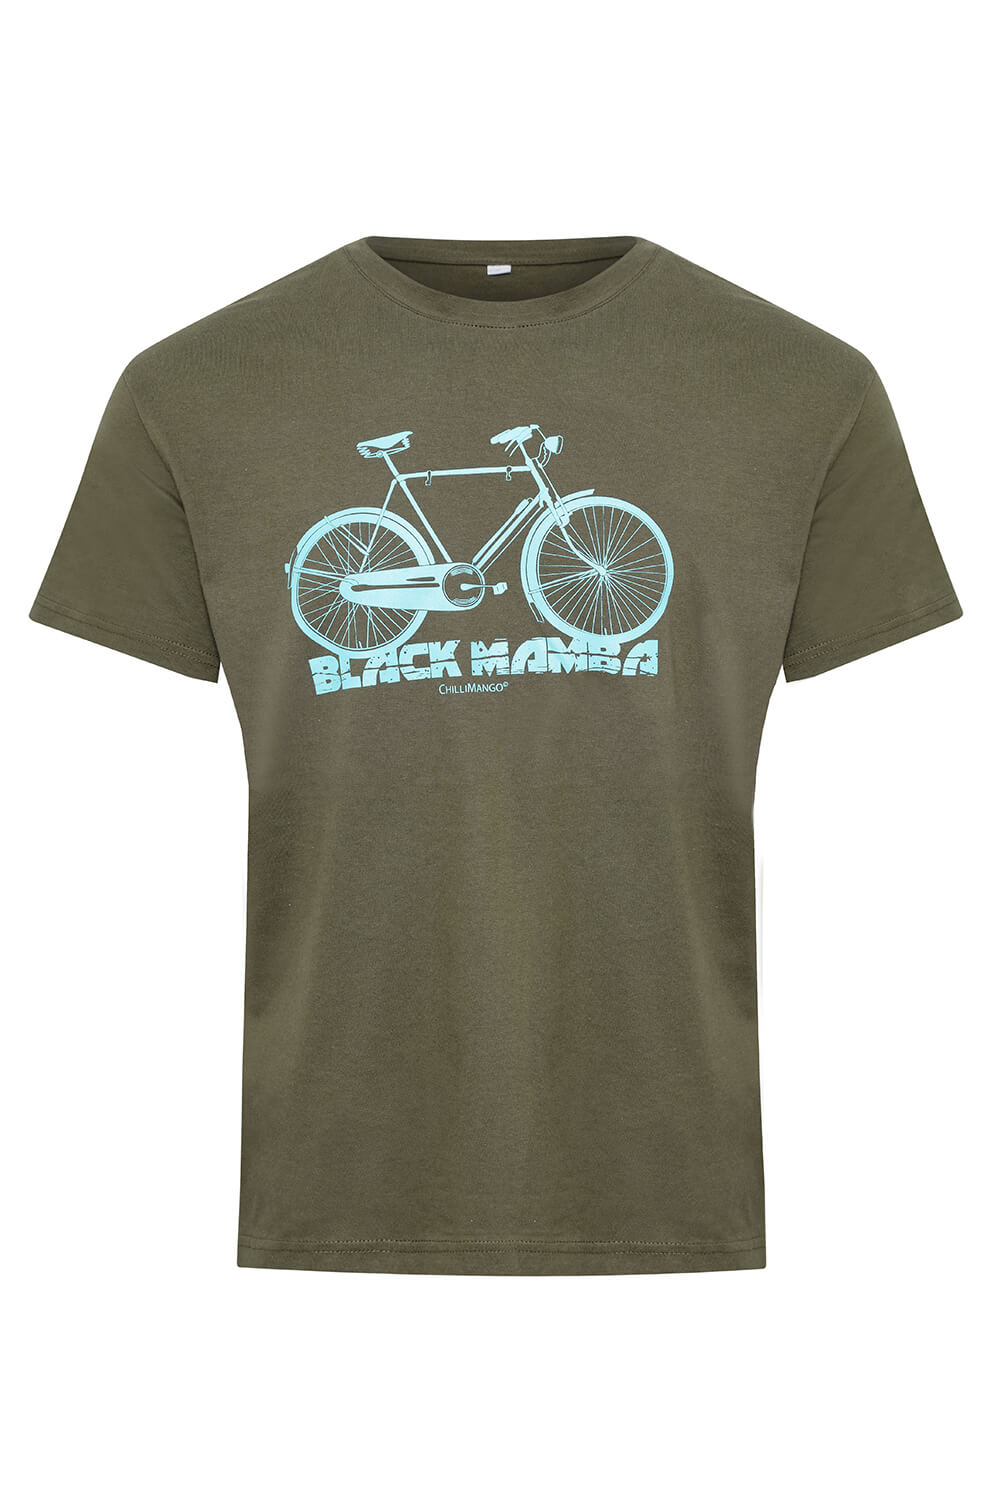 Men's cotton t-shirt black mamba bicycle logo